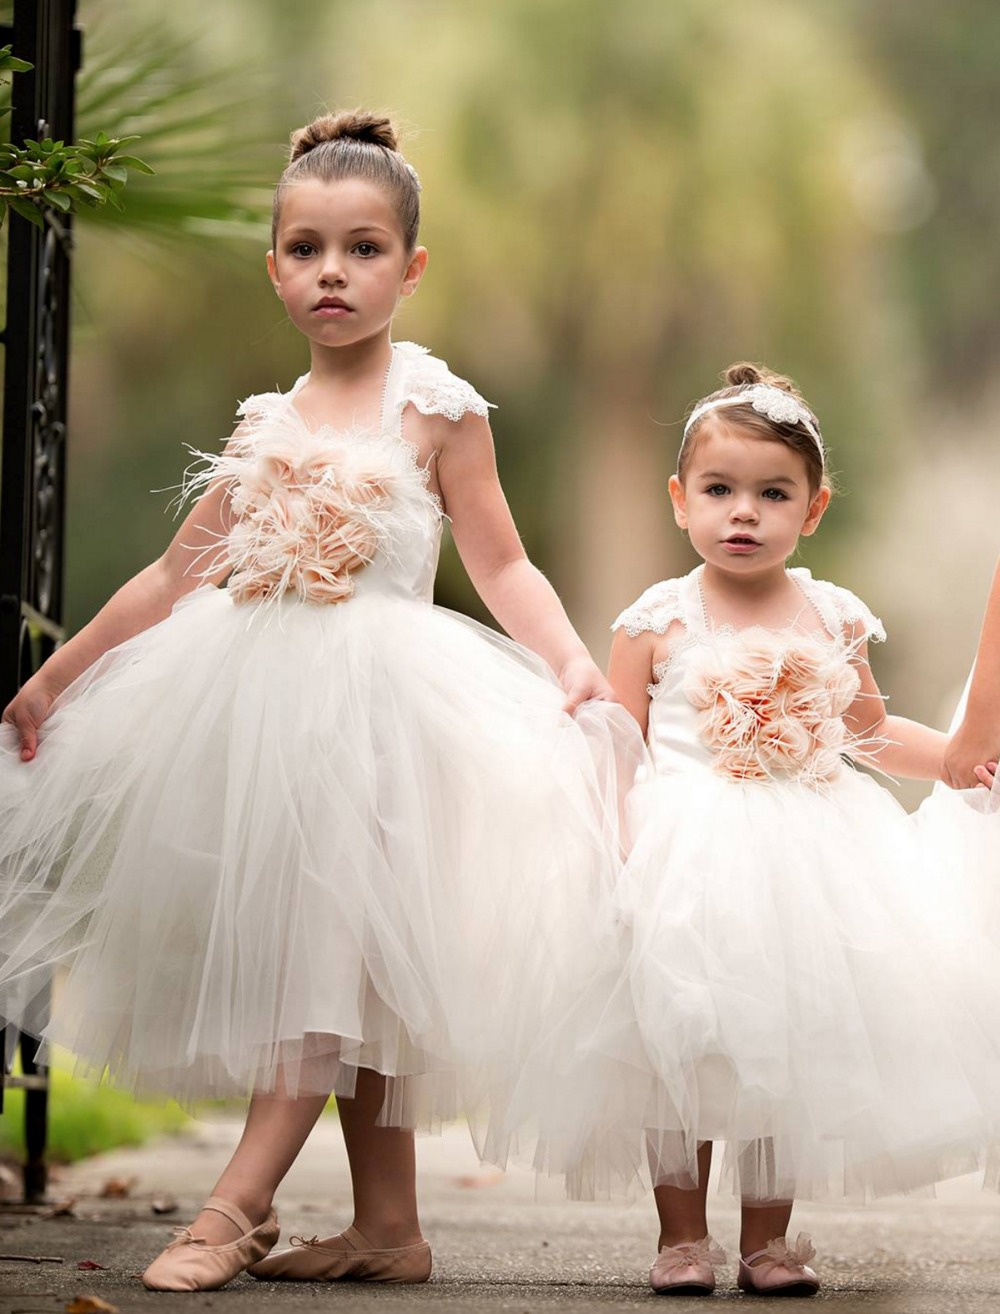 Amazing Evening Girl Dresses White / Ivory Bow Sash Mid-caf length Square collar Spaghetti Straps Ball Gown Sleeveless Dress chromatin assembly by caf 1 during homologous recombination